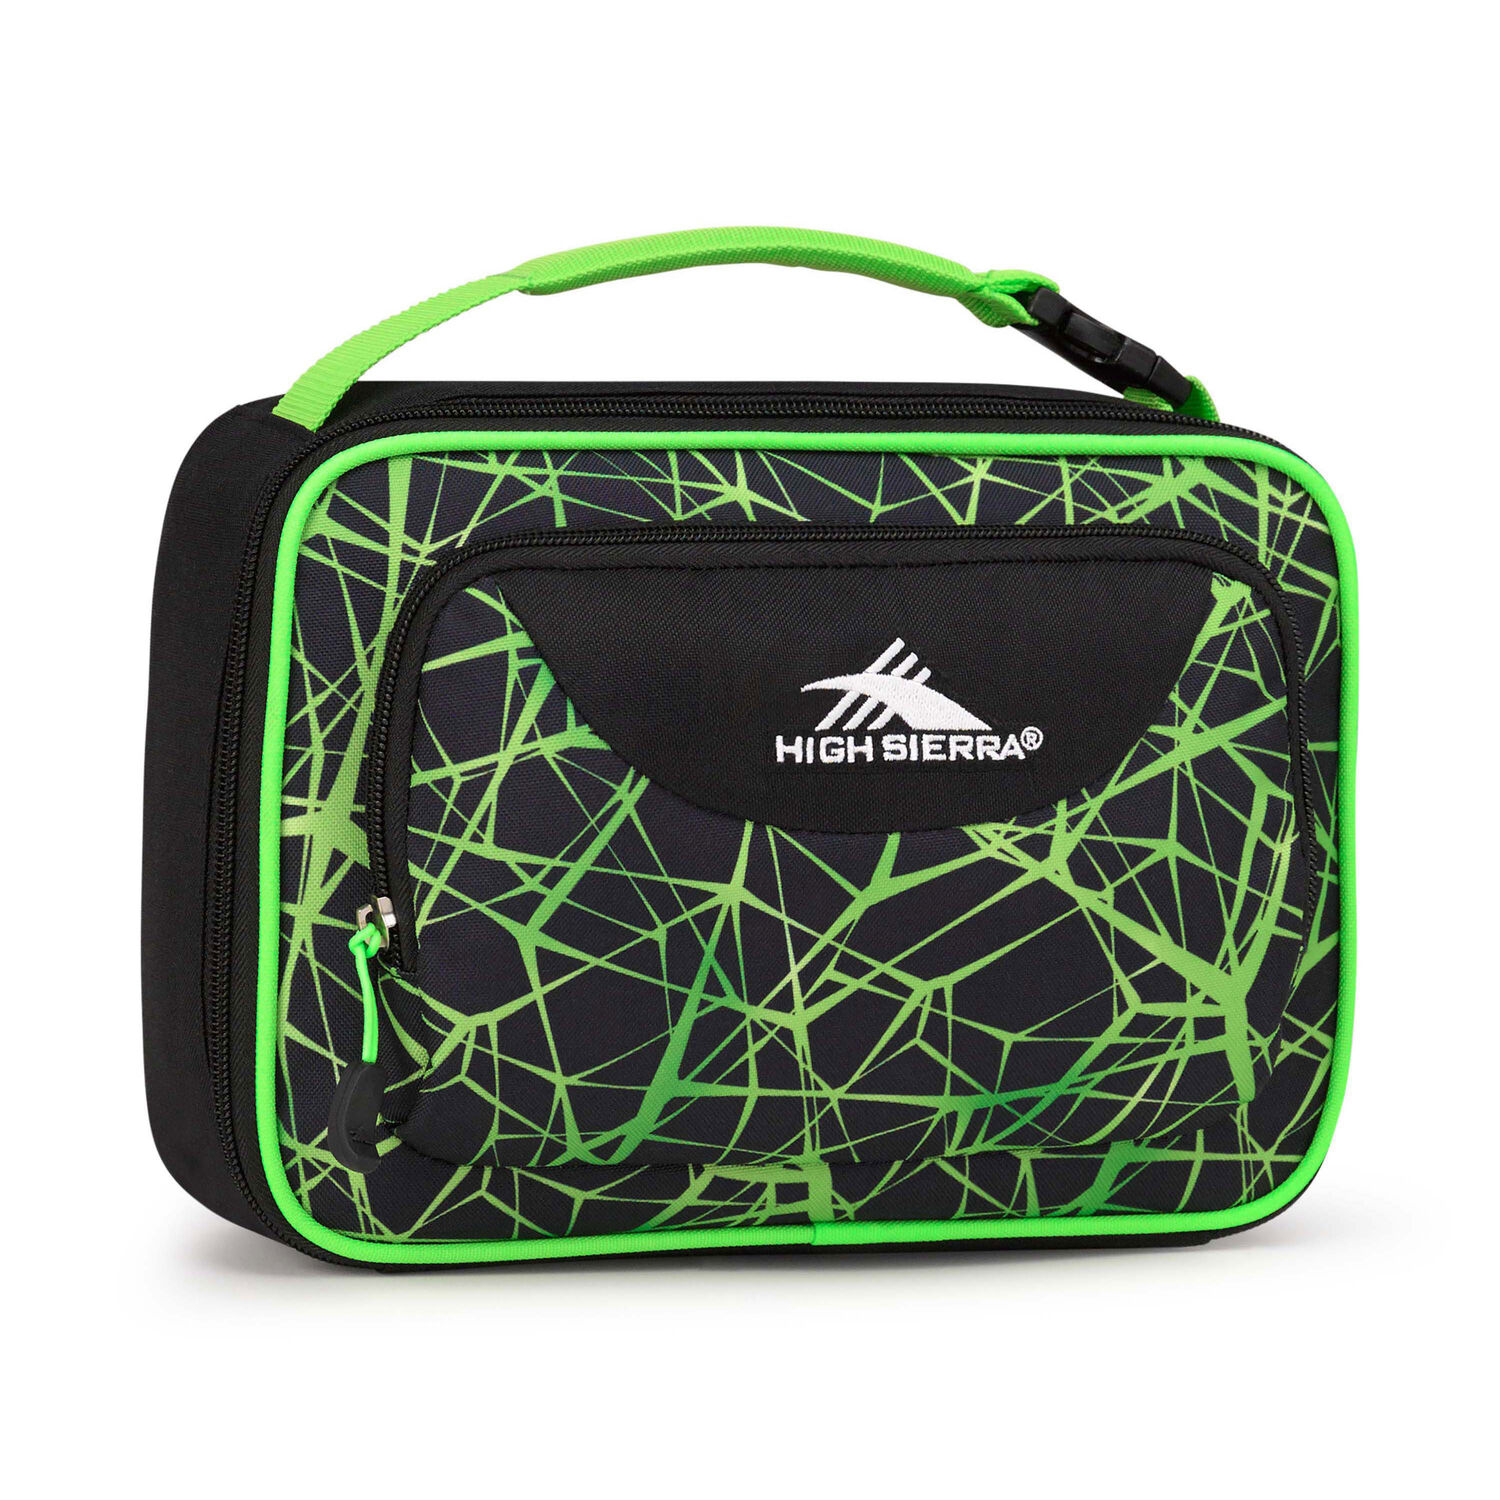 Web colors lime - High Sierra Lunch Packs Single Compartment In The Color Digital Web Black Lime